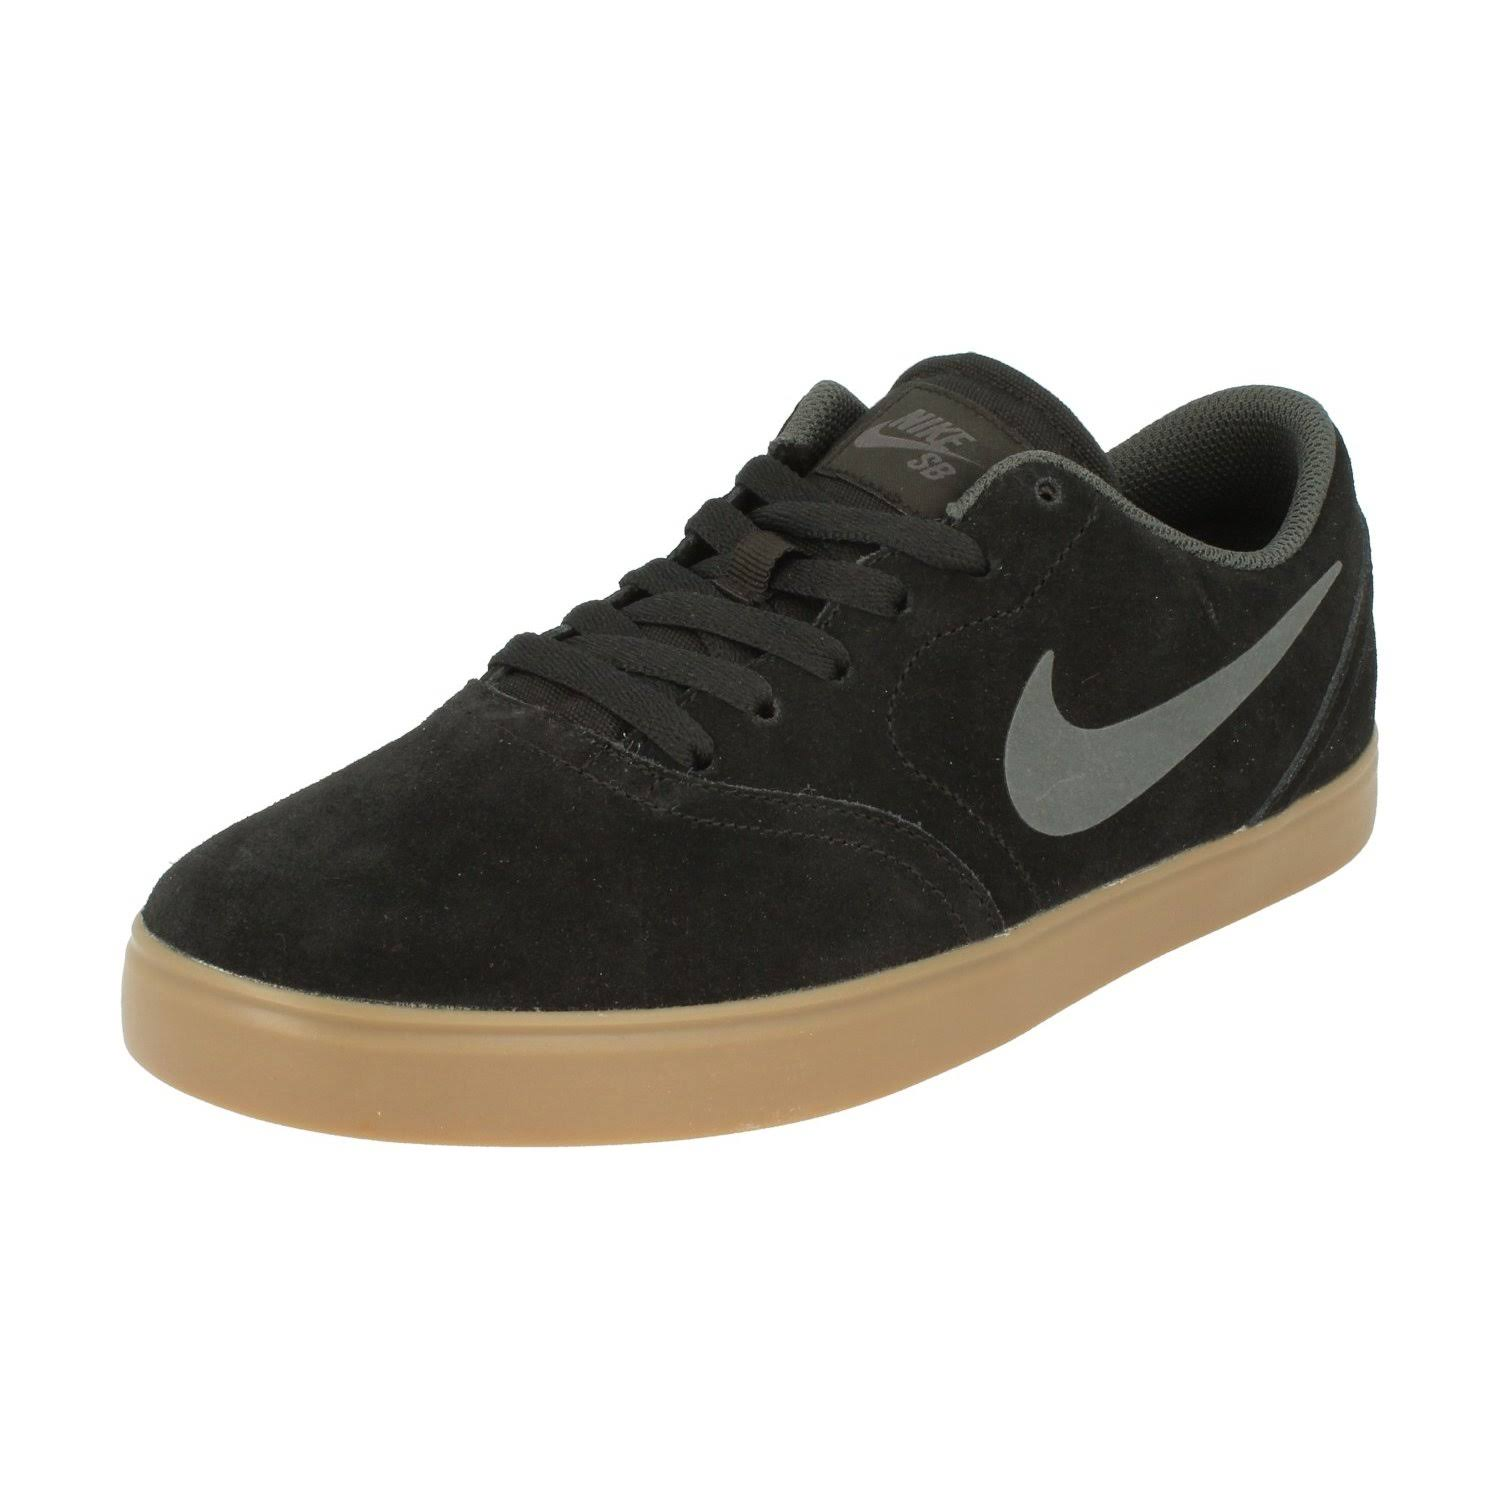 (6) Nike Sb Check Mens Trainers 705265 Sneakers Shoes